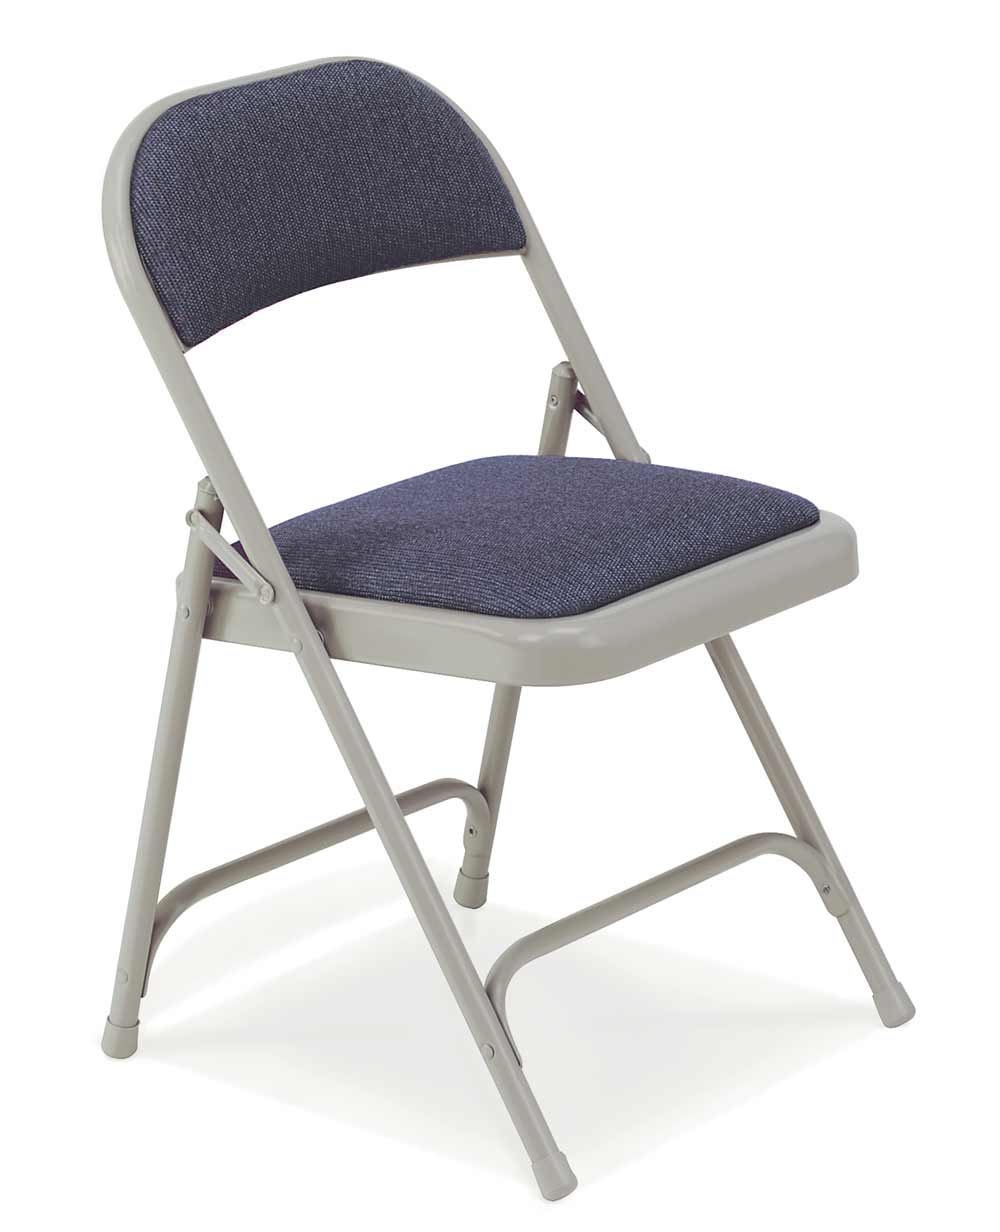 Virco Folding Chairs for All Events